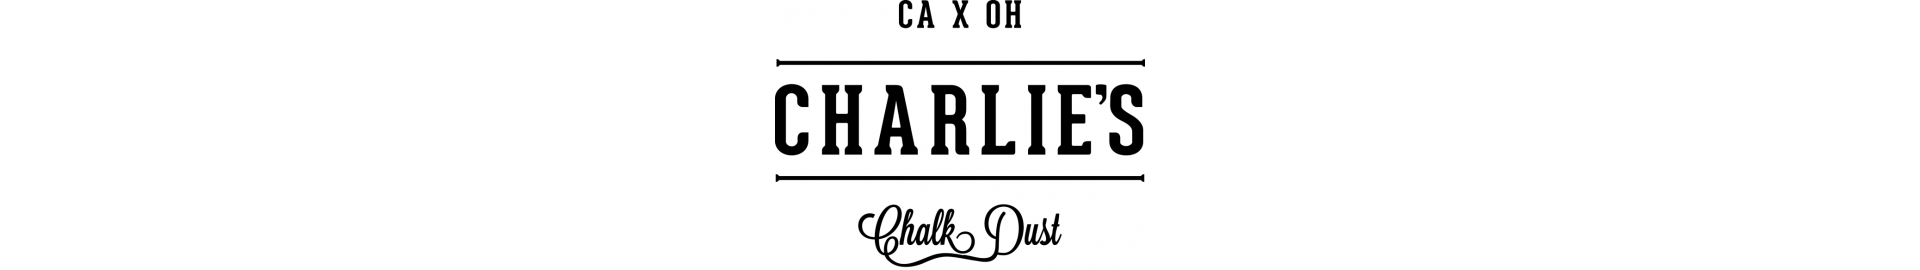 Charlie's Chalk Dust  | Royalsmoke.co.uk